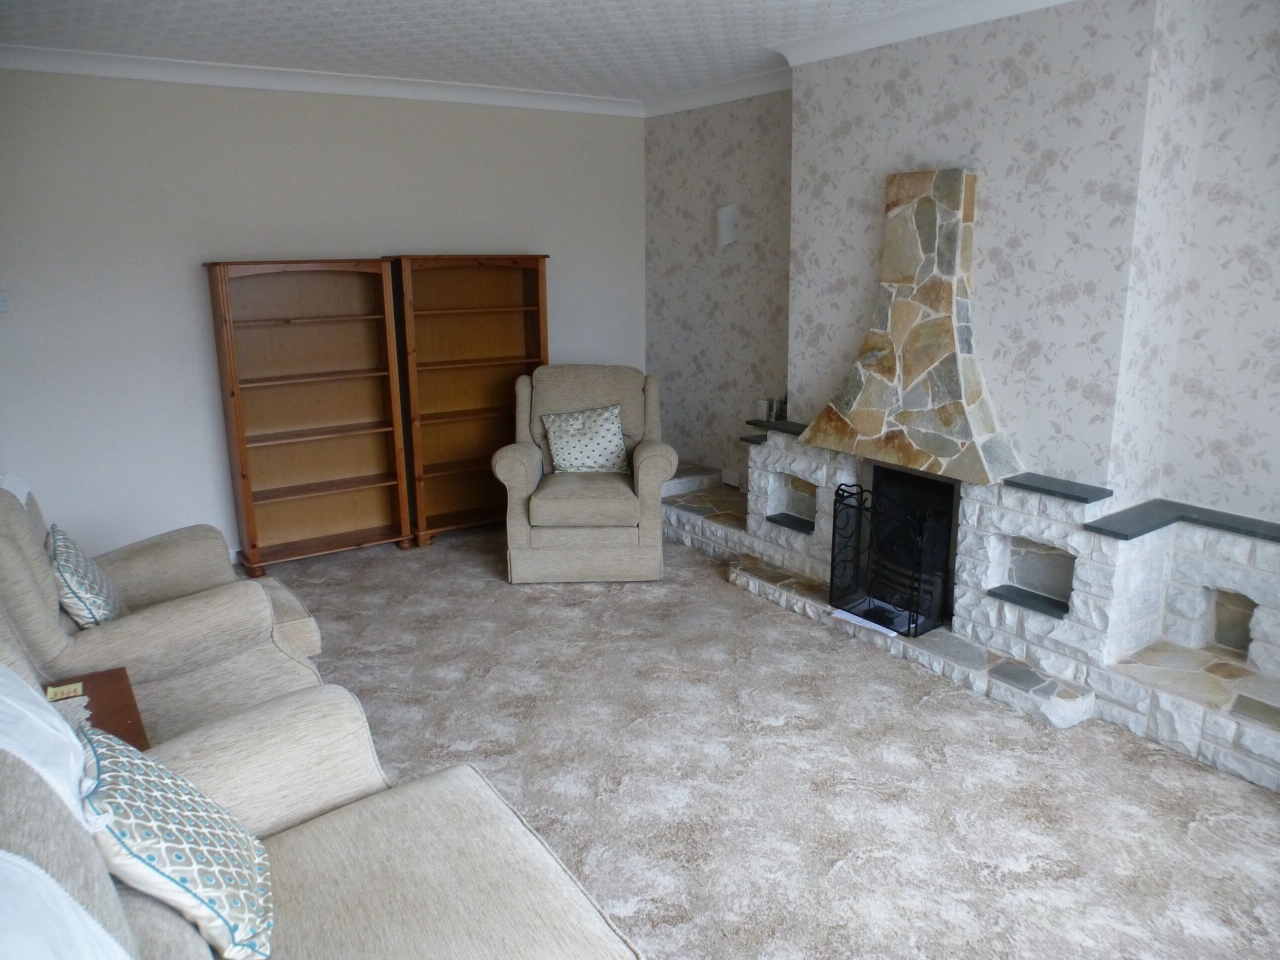 Image 3 of 3 of LOUNGE, on Accommodation Comprising for